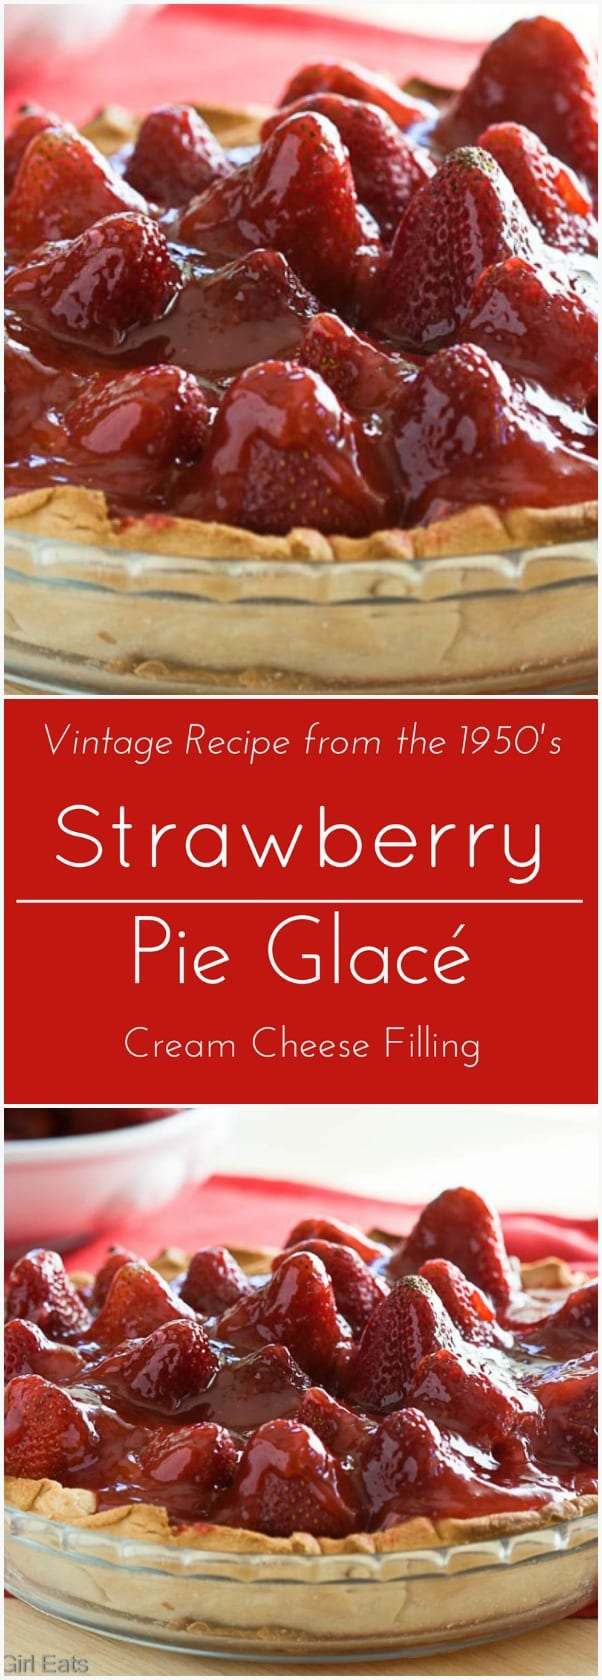 Strawberry Pie Glace with Cream Cheese Filing. No-Bake.